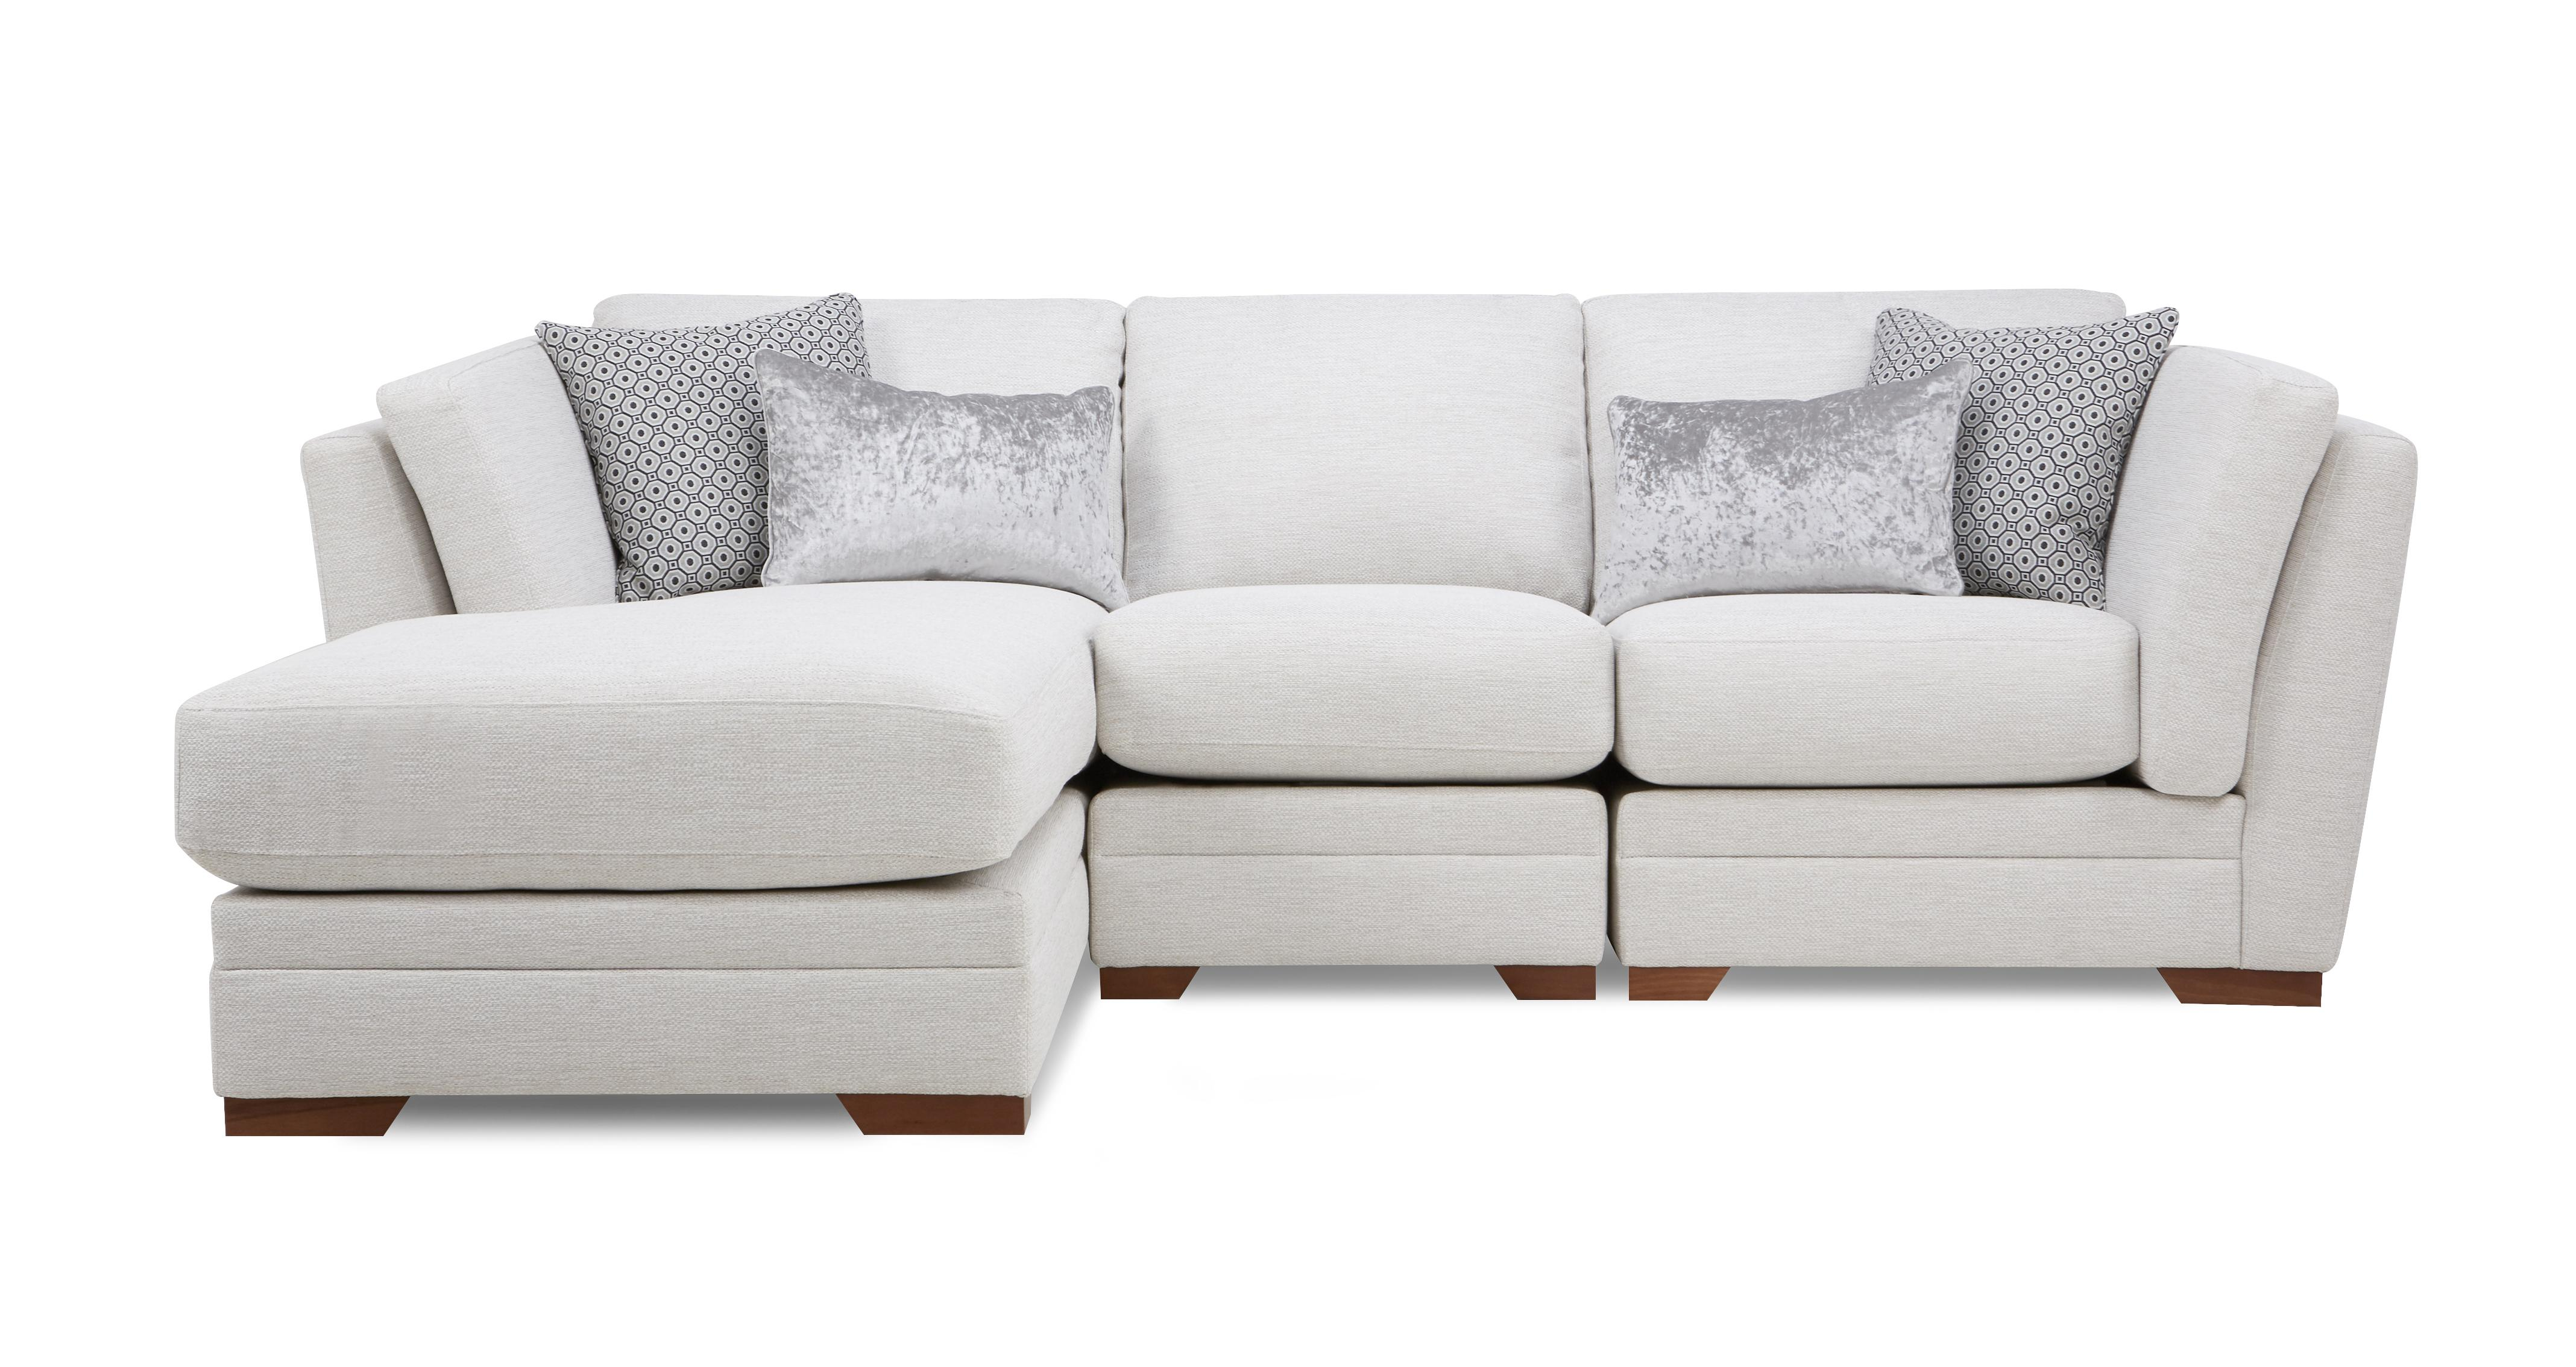 Beau Long Beach Left Hand Facing Small Chaise Sofa | DFS